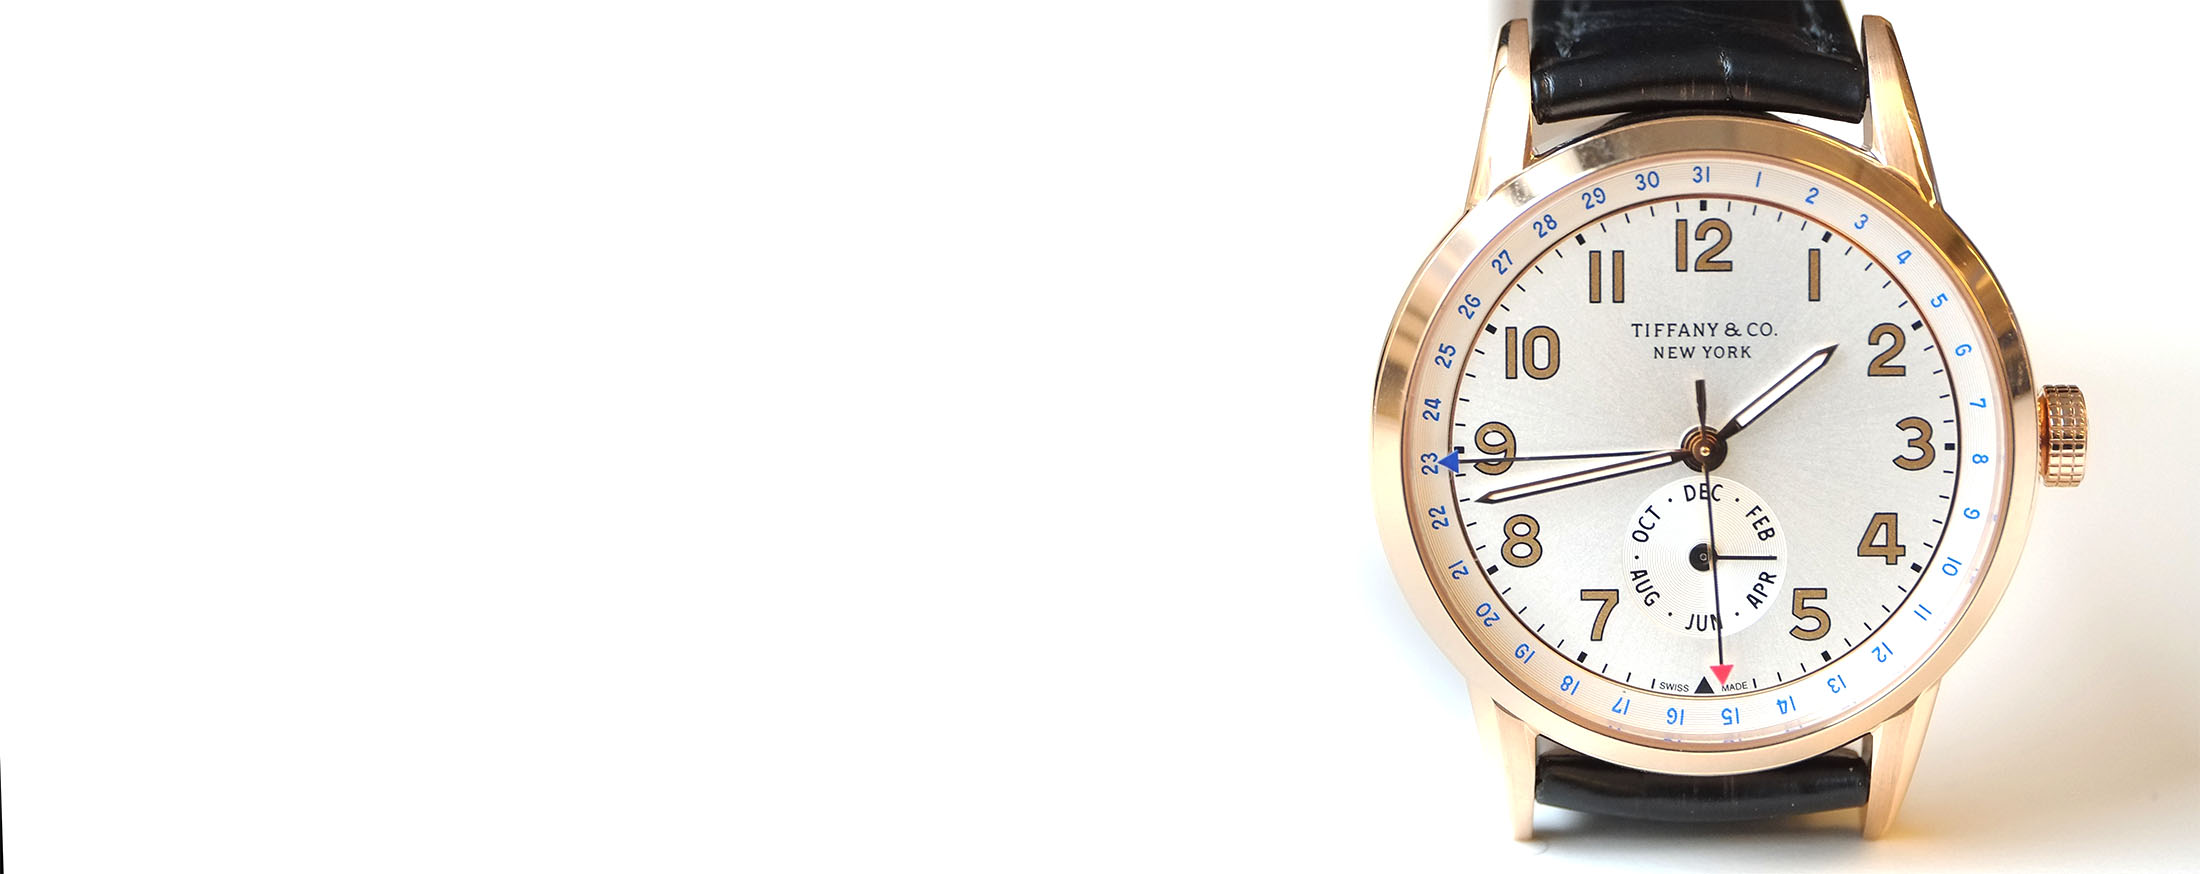 ff8f9d3413 Tiffany Unveils New Vintage-Inspired CT60 Watch Collection - Bloomberg